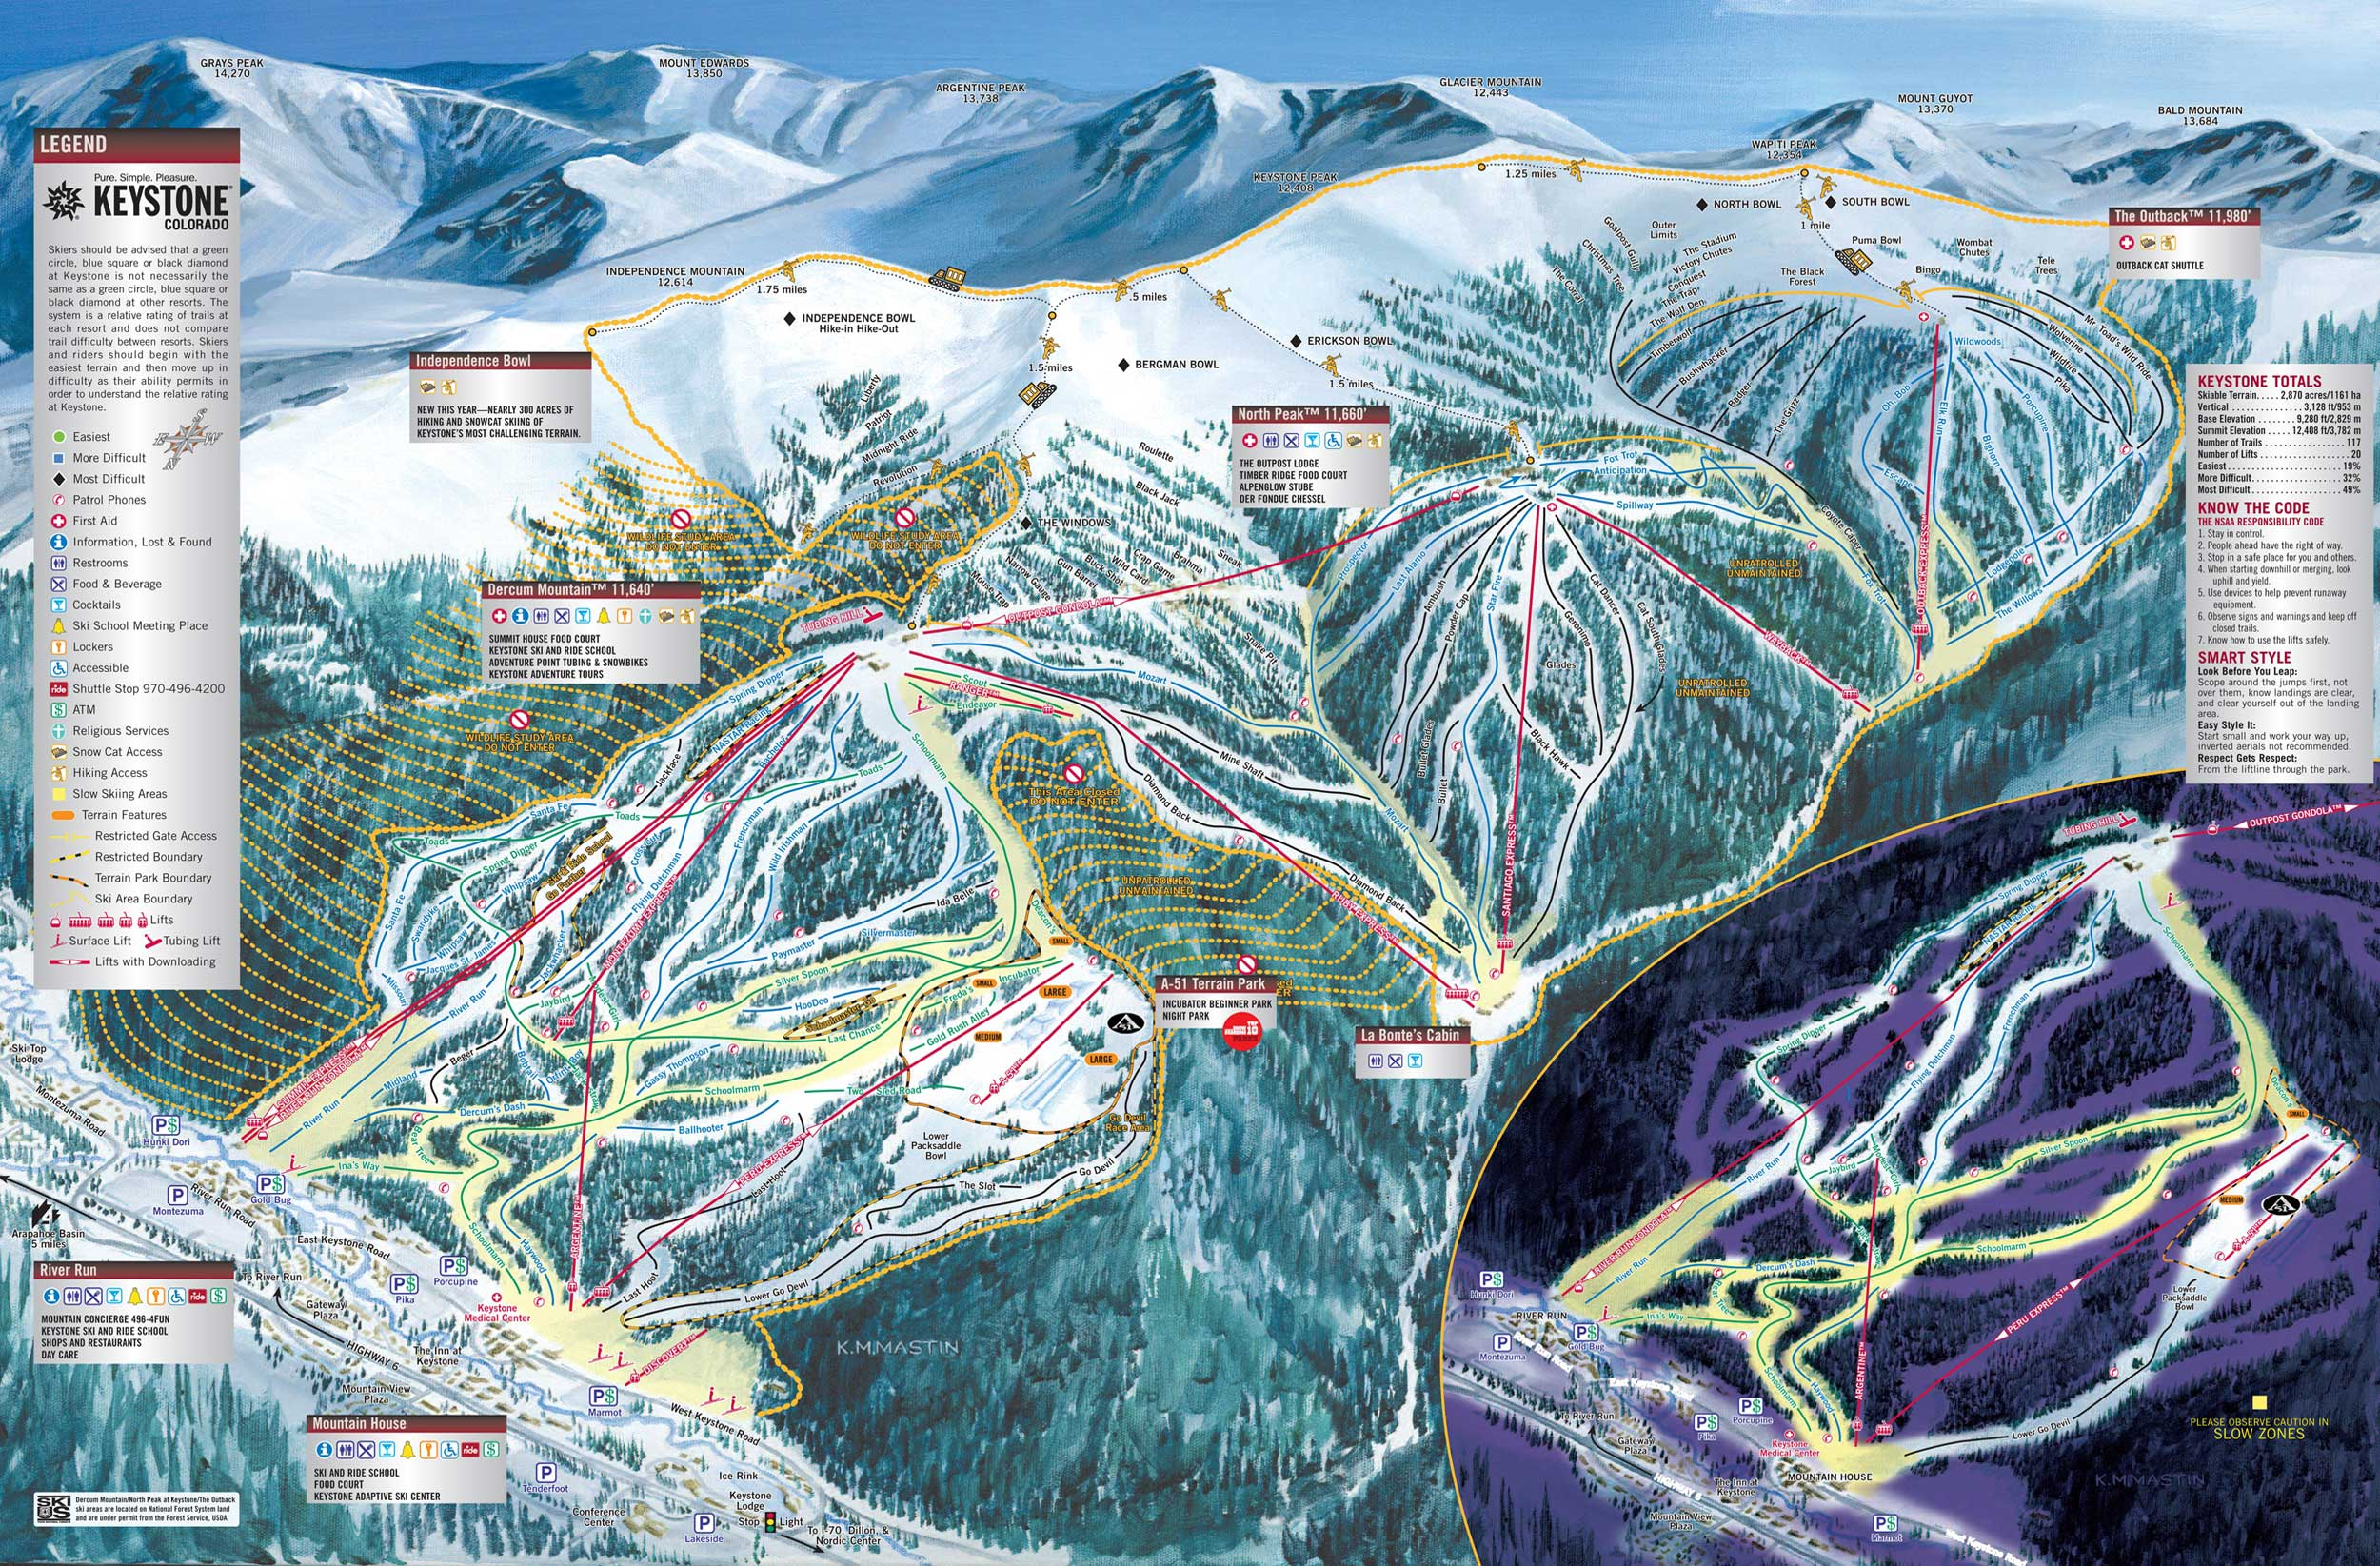 Keystone Resort   SkiMap.org